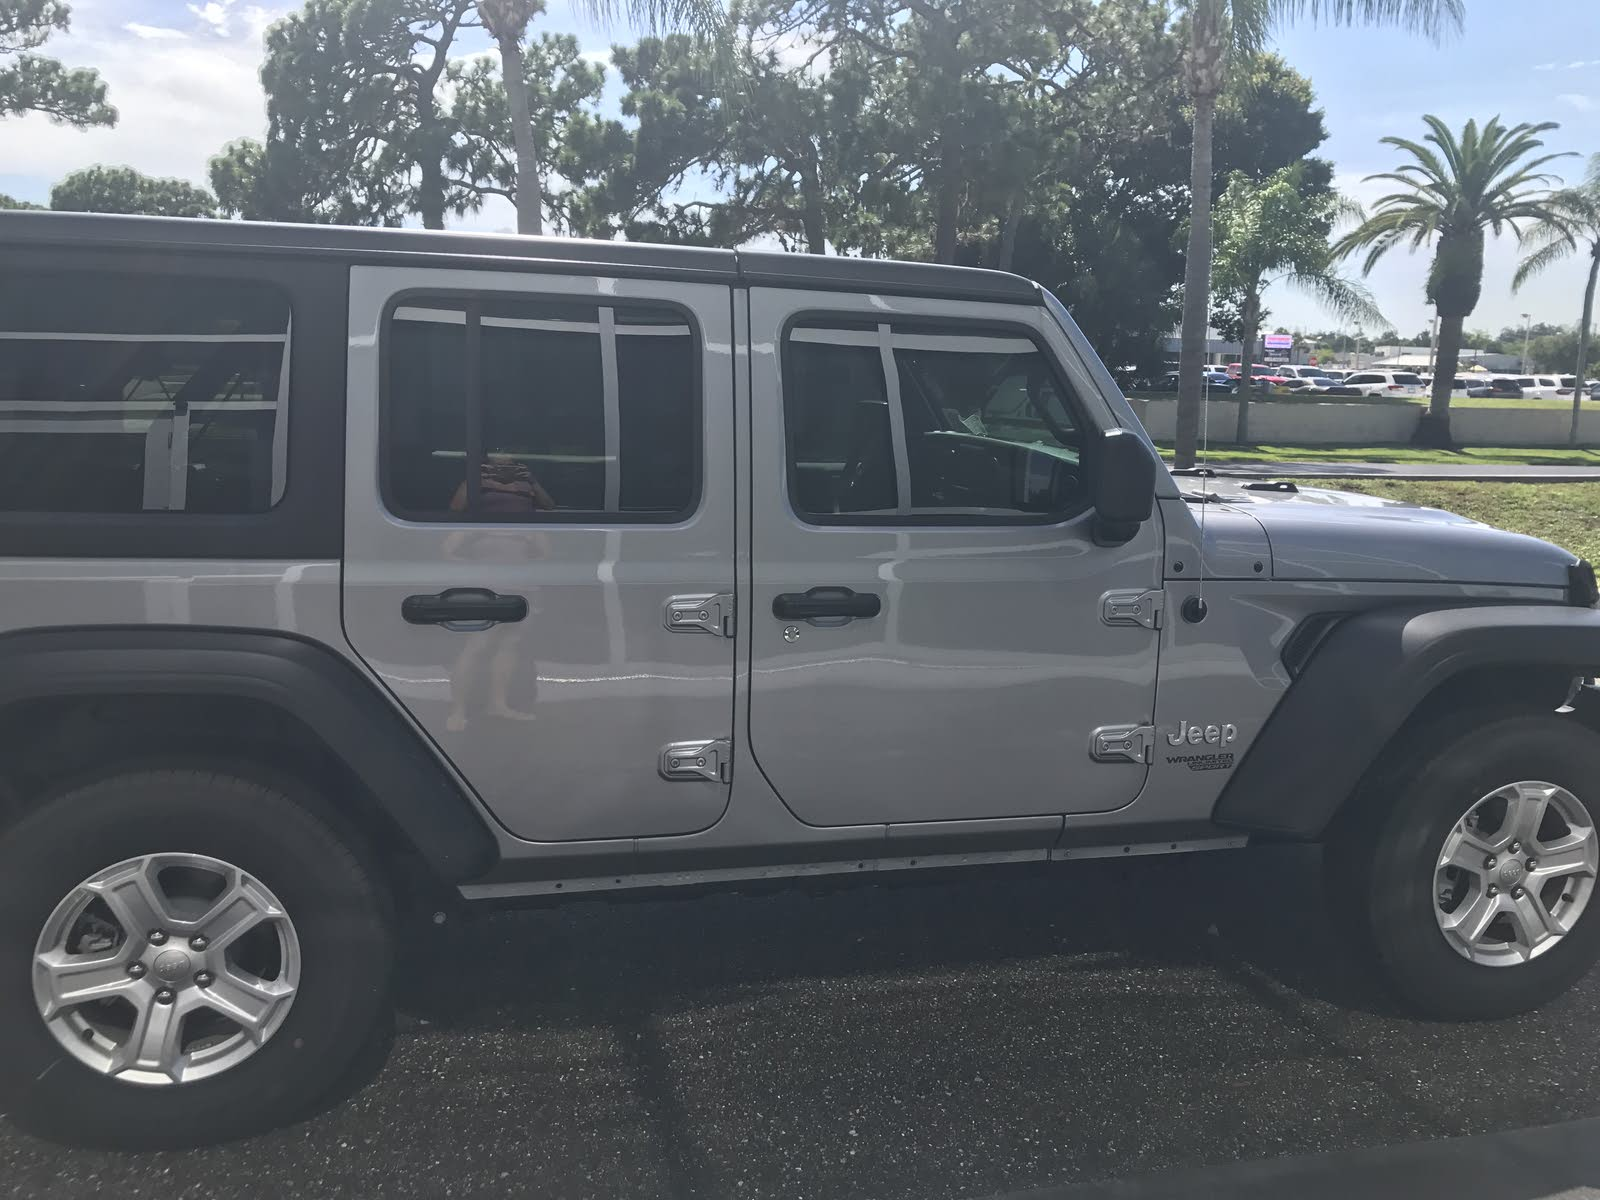 Sport L With A Hard Top I Would Really Like To Get A Soft Top As An Option  Should I Just Get It From The Manufacturer Or What Is Another Option